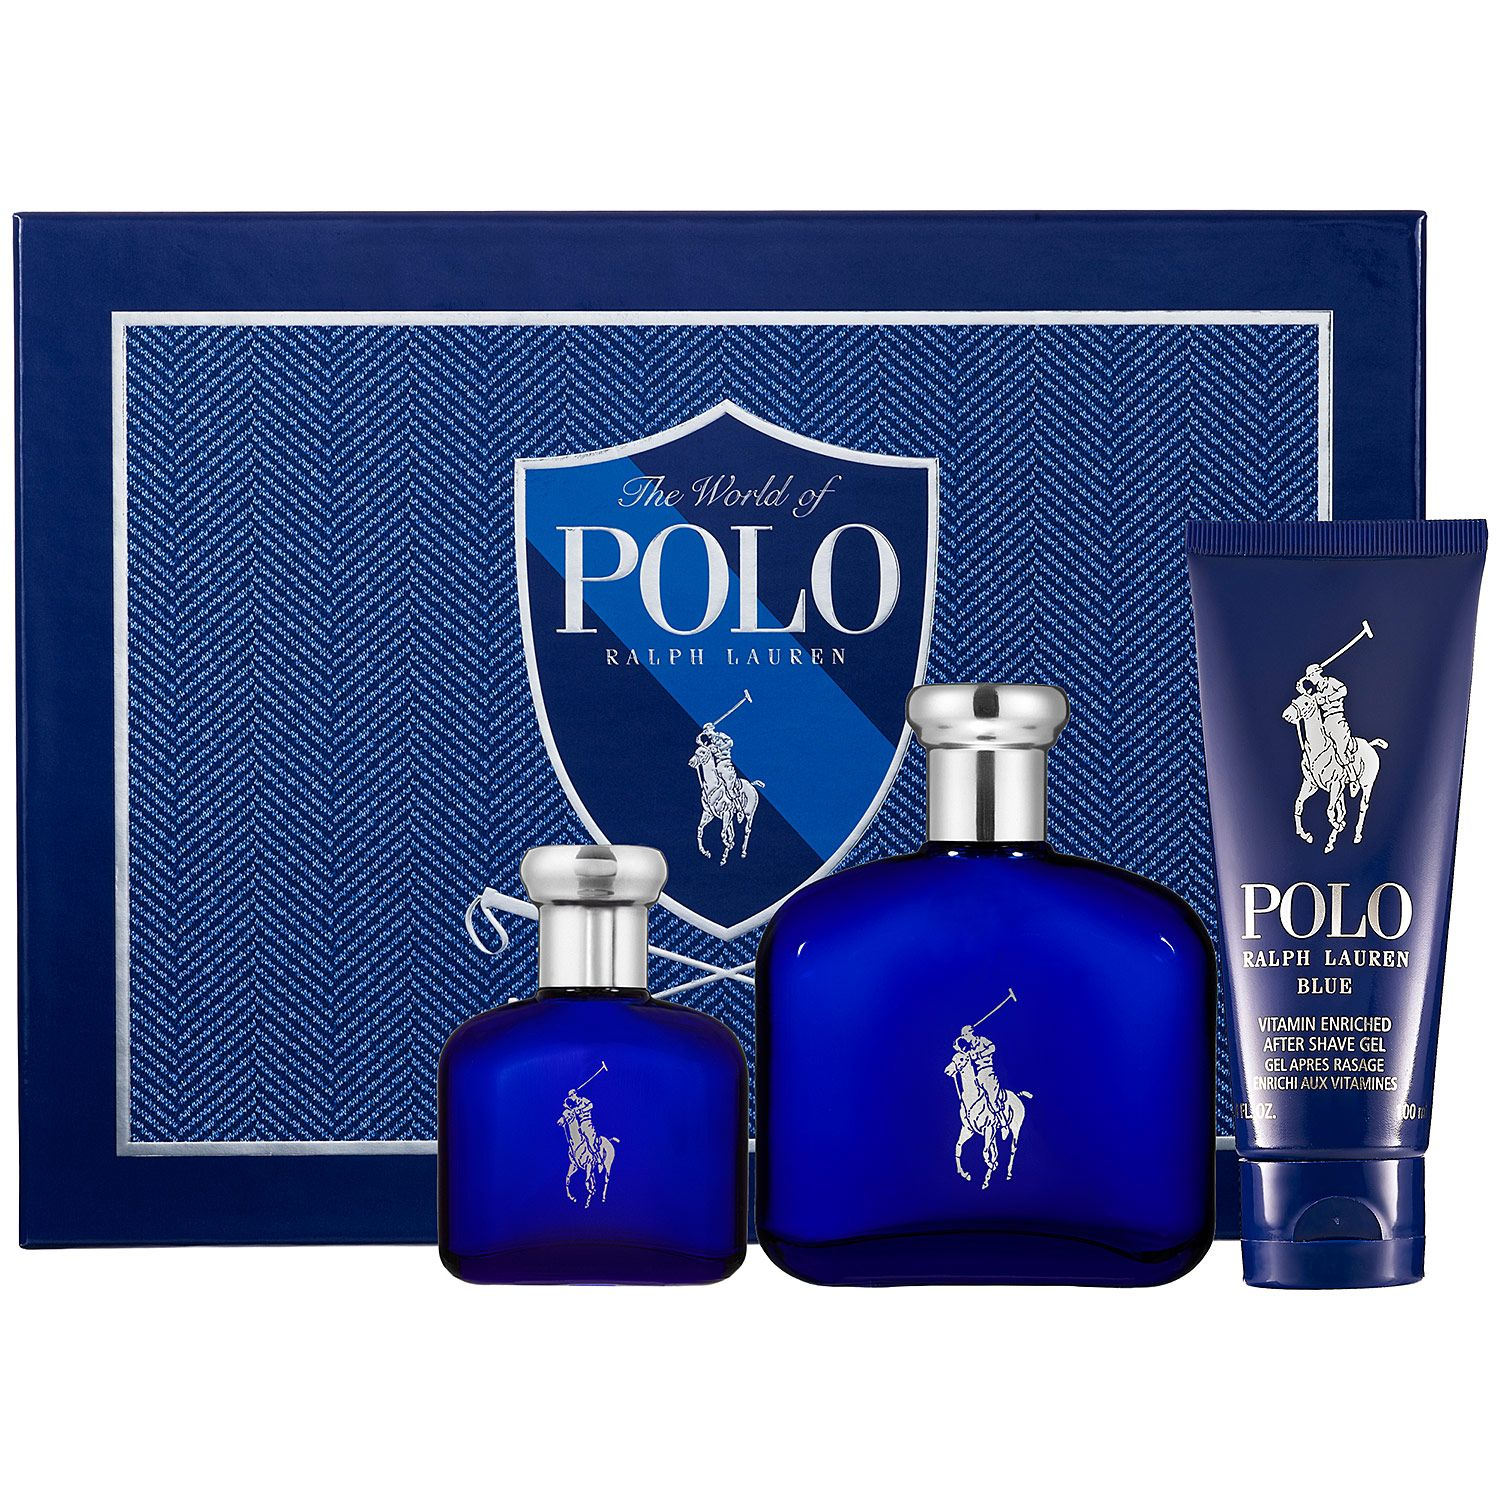 Ralph Lauren Polo Blue Gift Set Sephora Gifts Giftsforhim Gifts